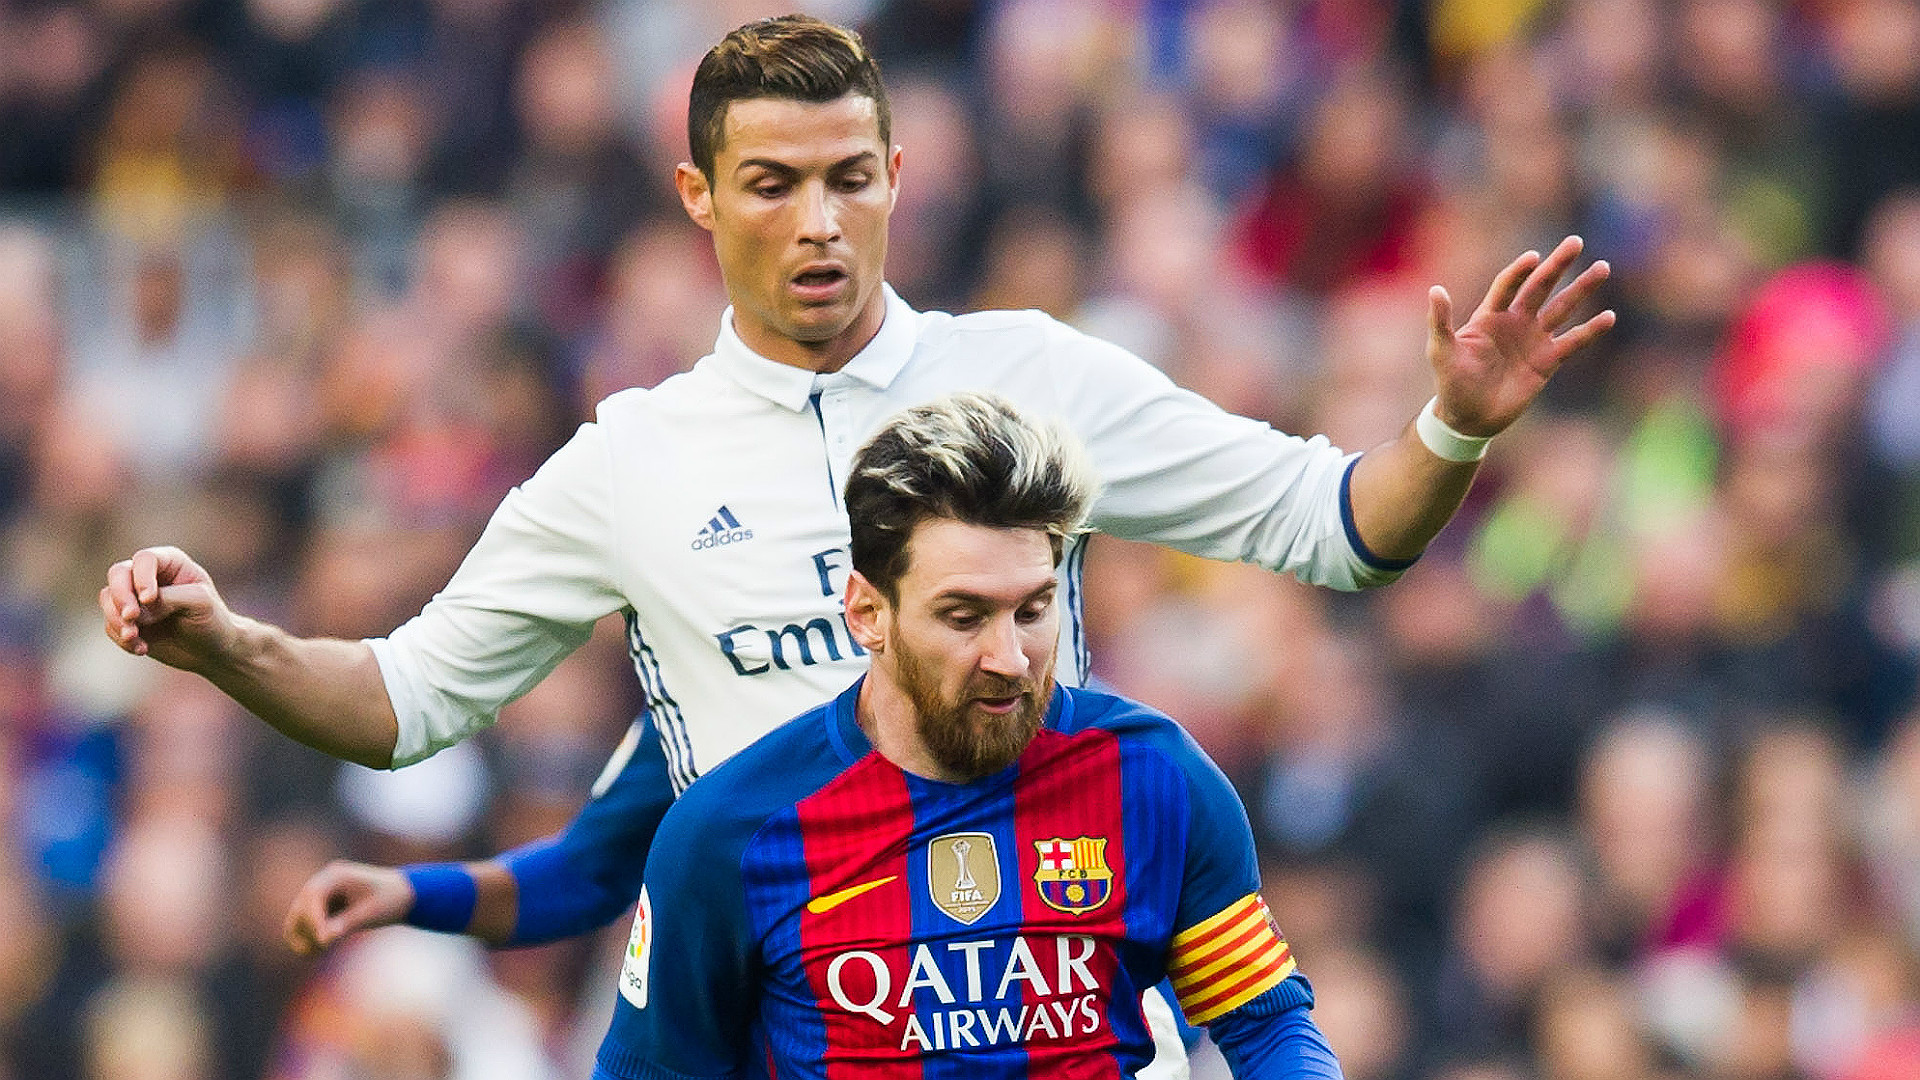 Messi Vs Ronaldo The Race To 100 Champions League Goals